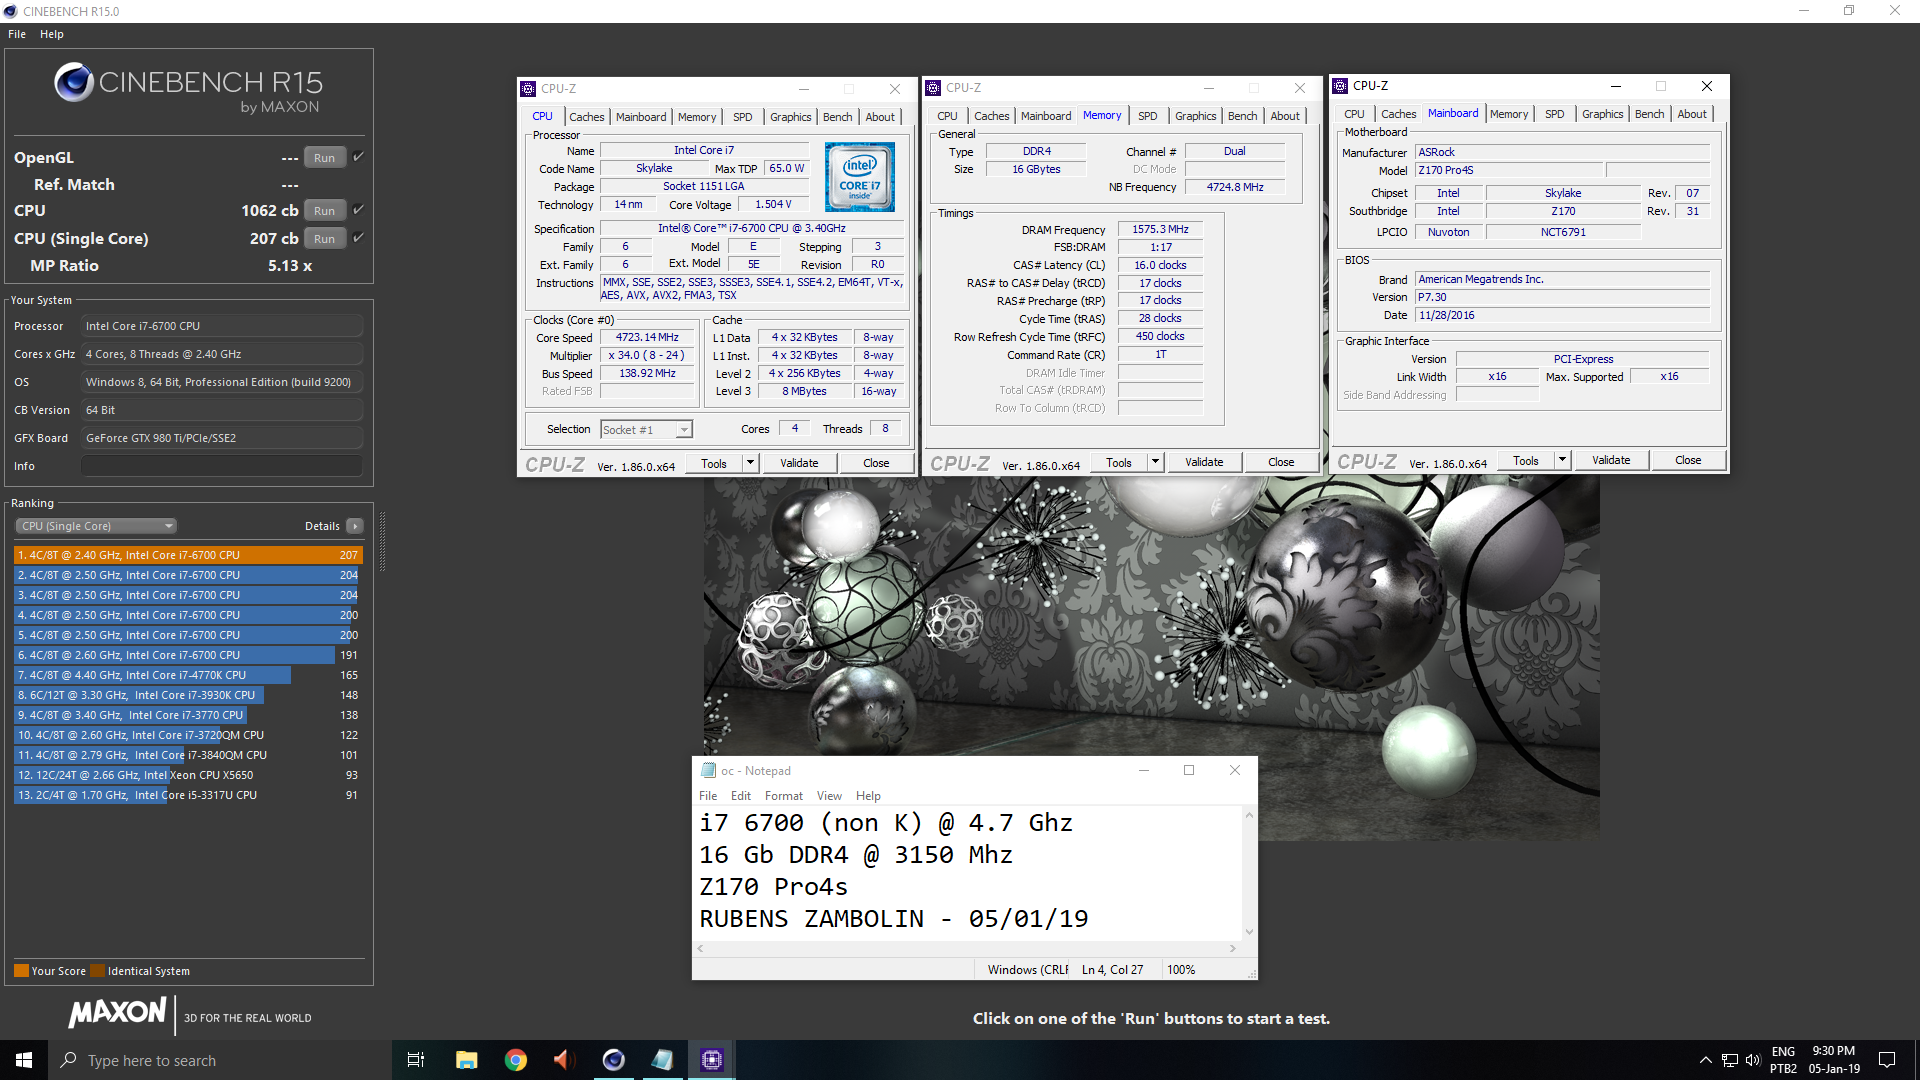 Unique_Ruh`s Cinebench - R15 score: 1062 cb with a Core i7 6700